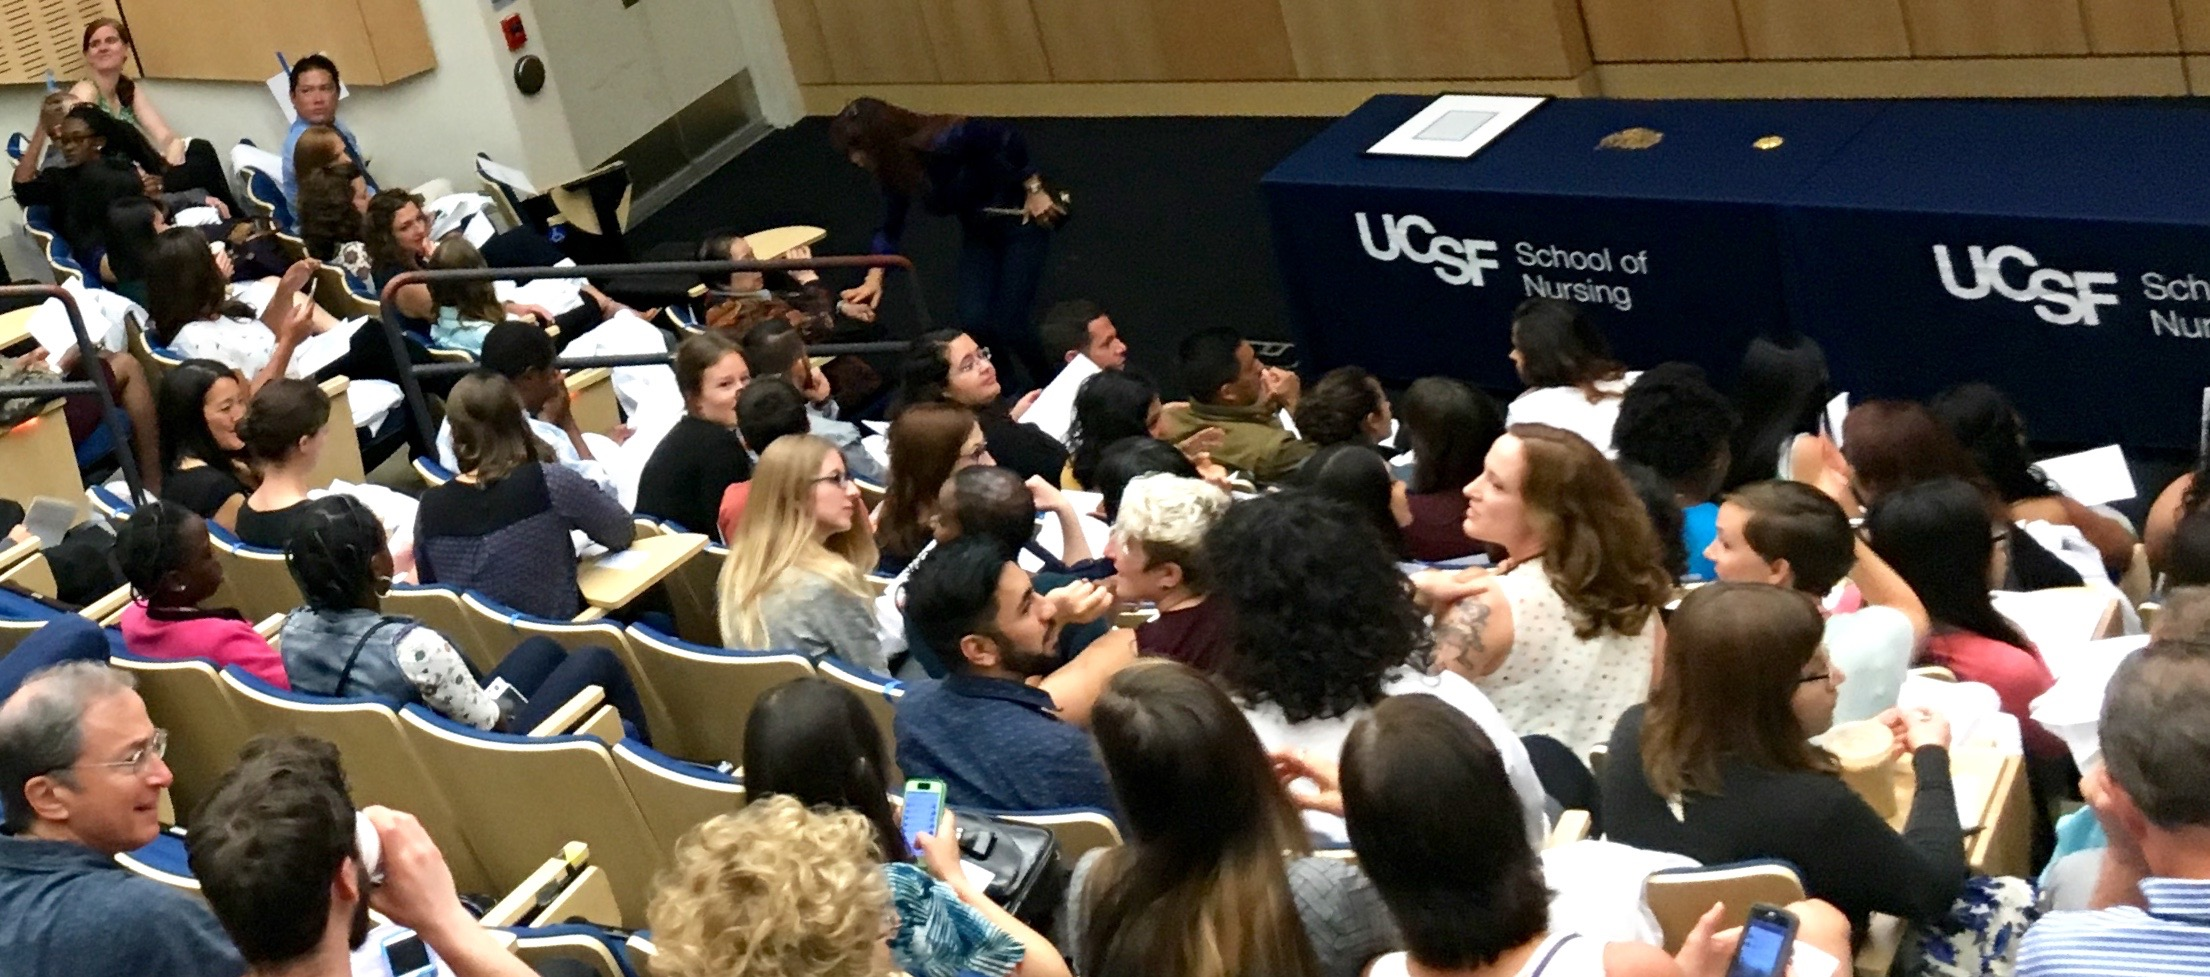 Audience gathers for start of MEPN White Coat Ceremony in UCSF's Cole Hall.